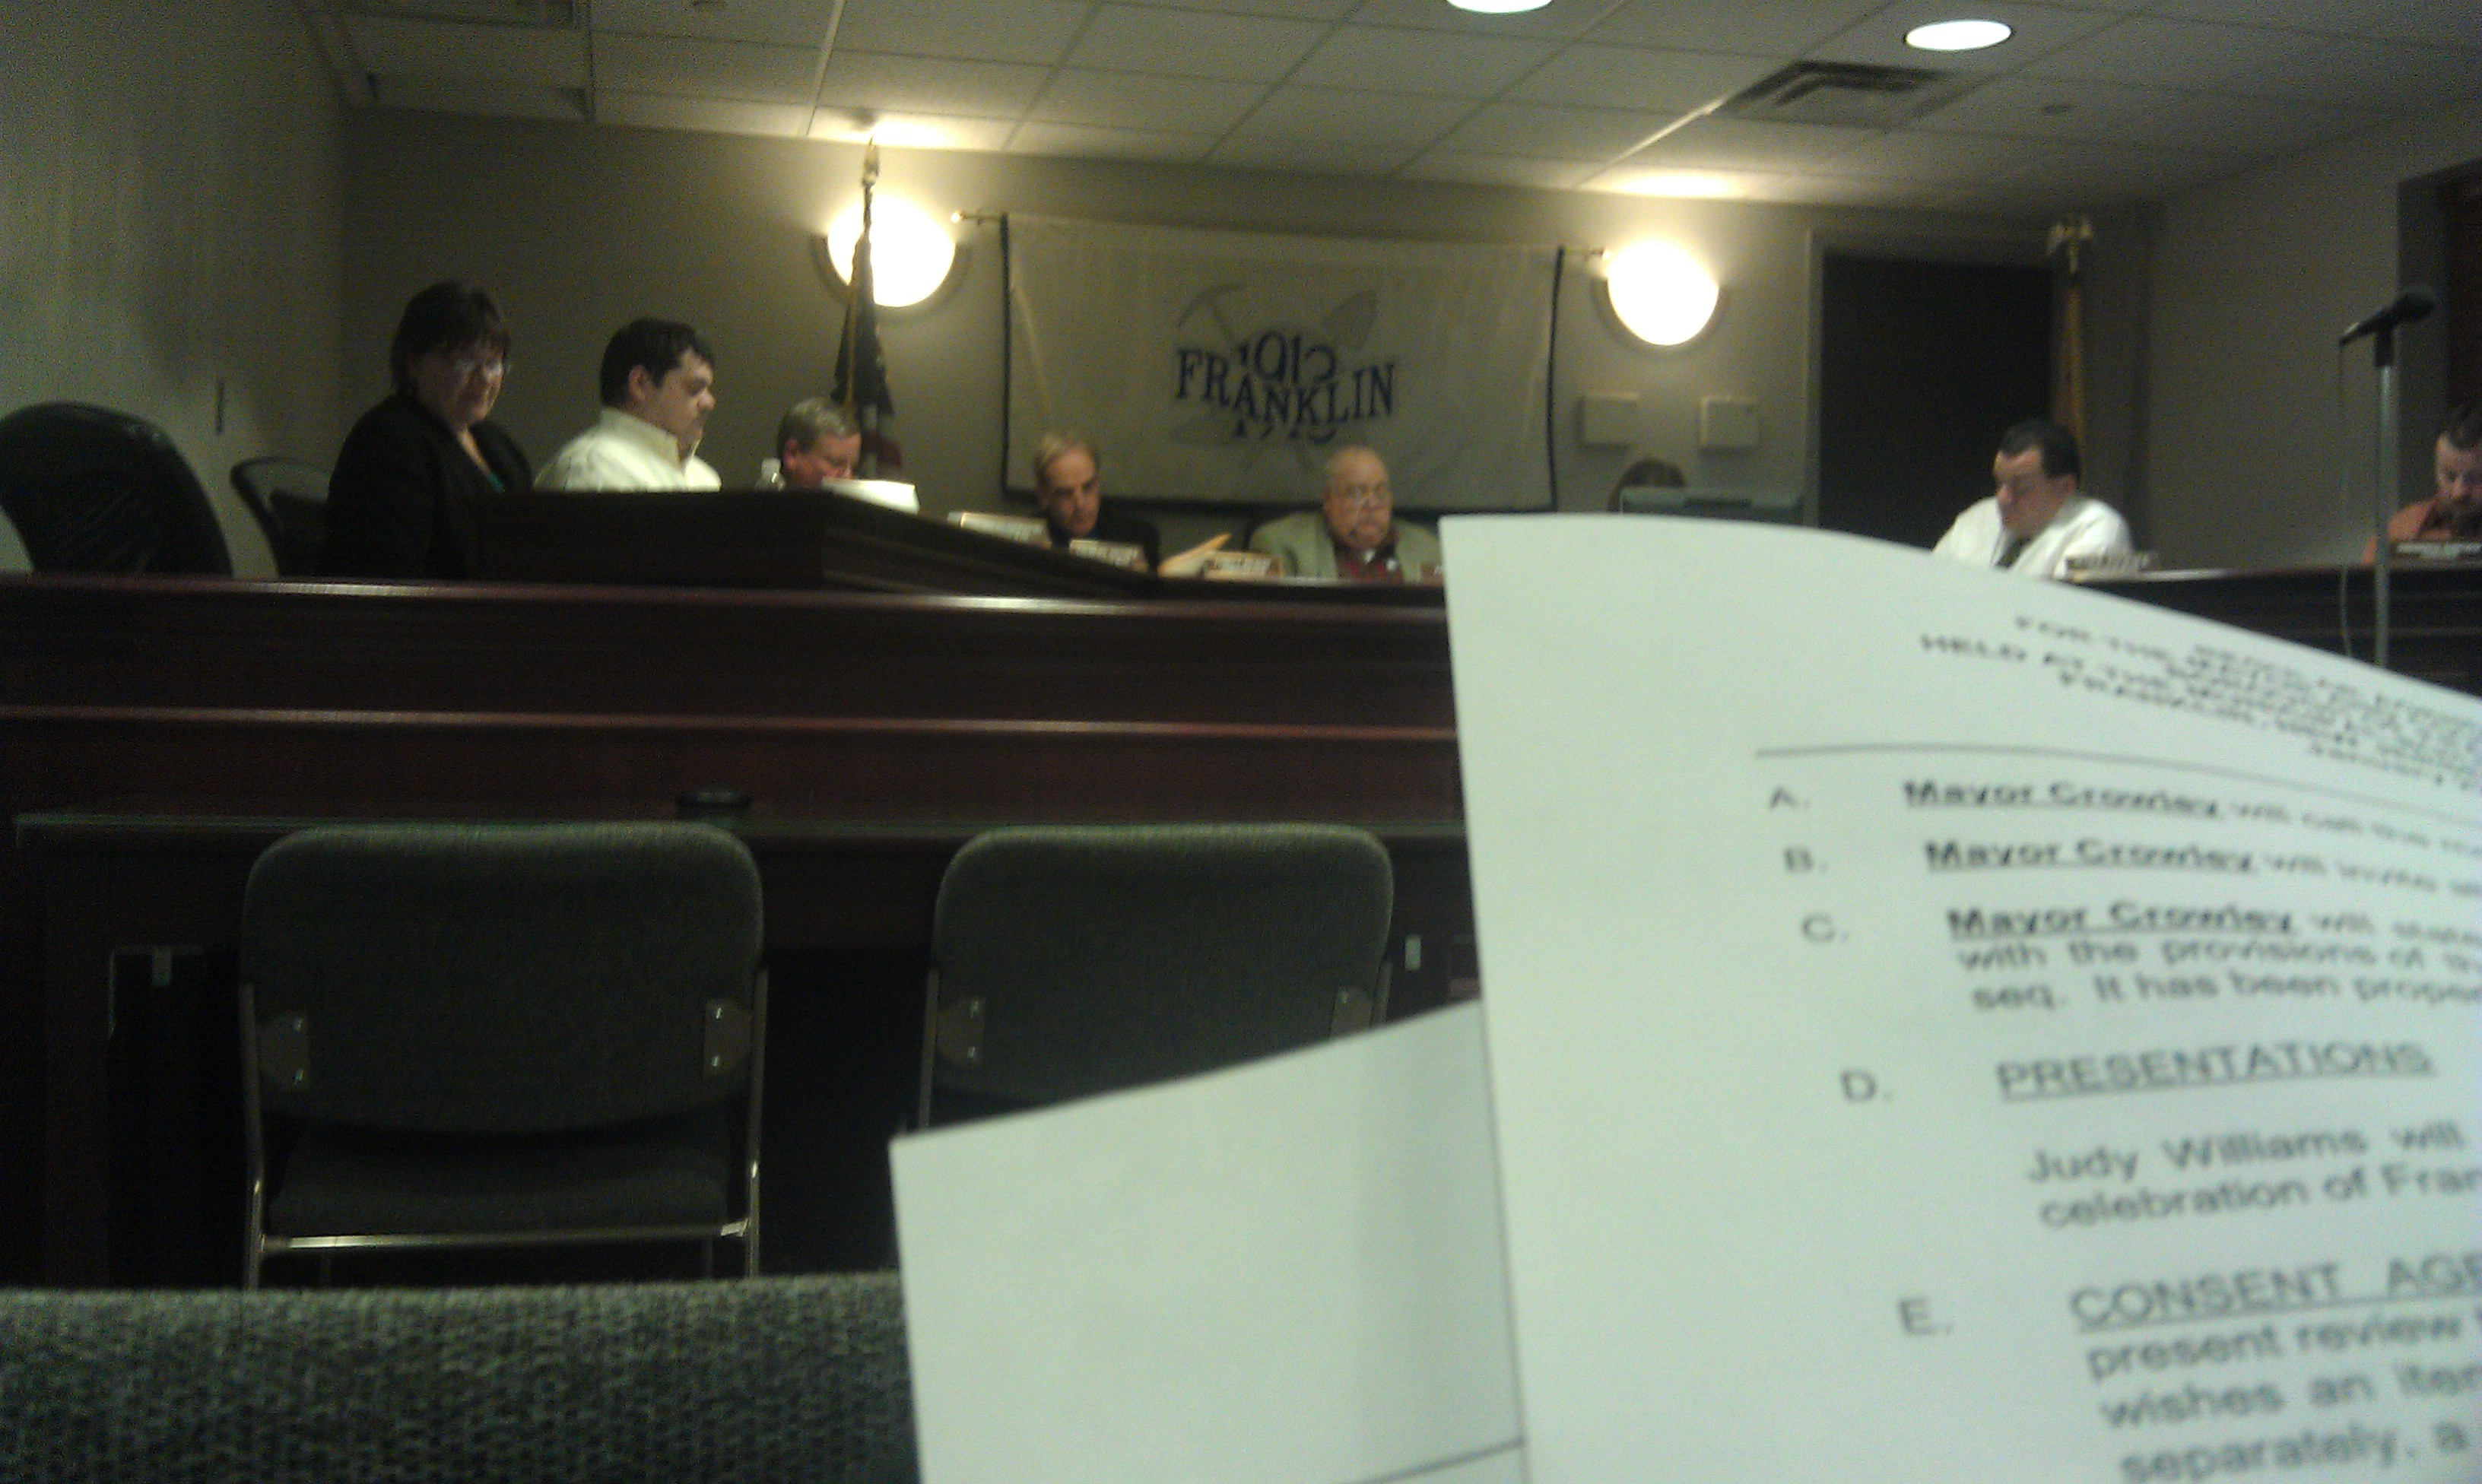 653e0b7c46622f9fdb89_council_meeting_2.jpg